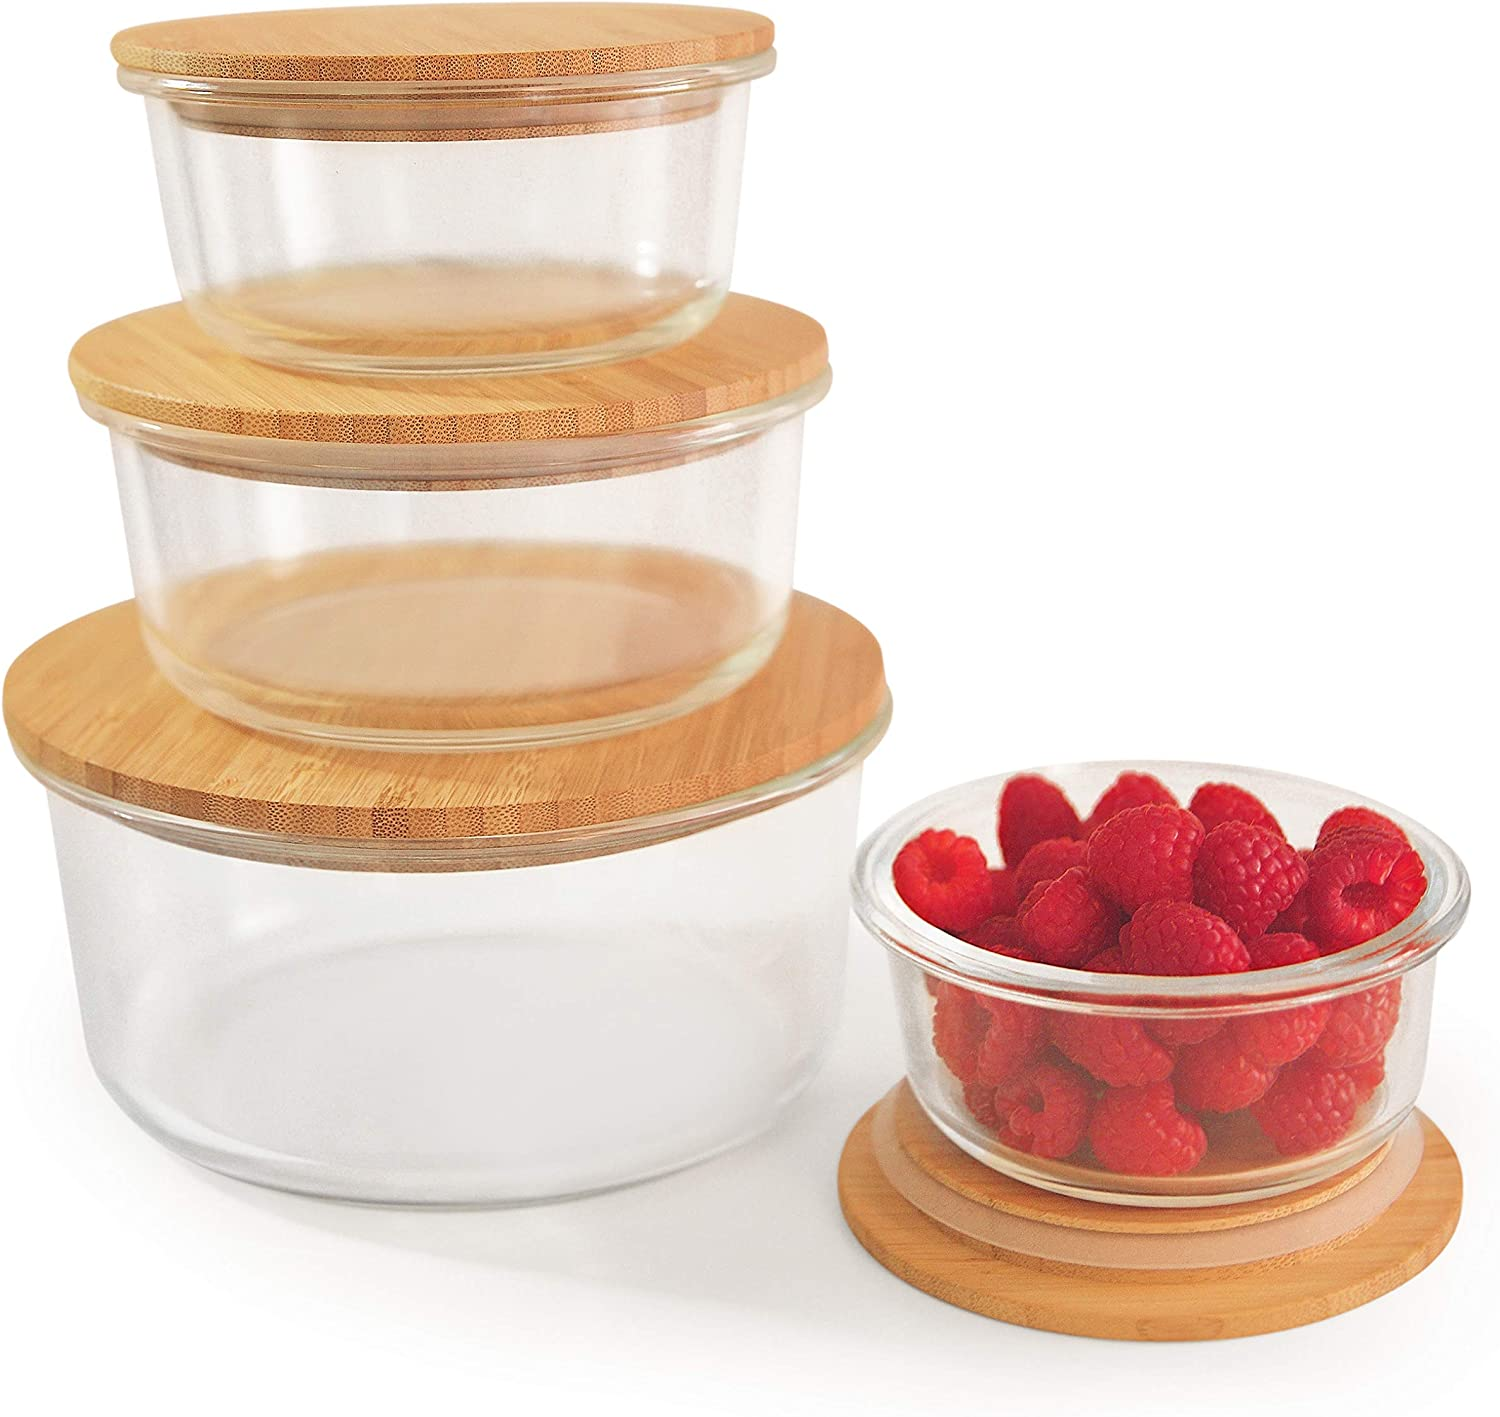 Live Bamboo Premium Round Glass Storage Containers with Bamboo Lids for Meal Prep/Food Storage | Set of 4 | BPA Free, Recyclable, Eco-friendly, Plastic Free | Microwave, Dishwasher, Oven, Freezer Safe